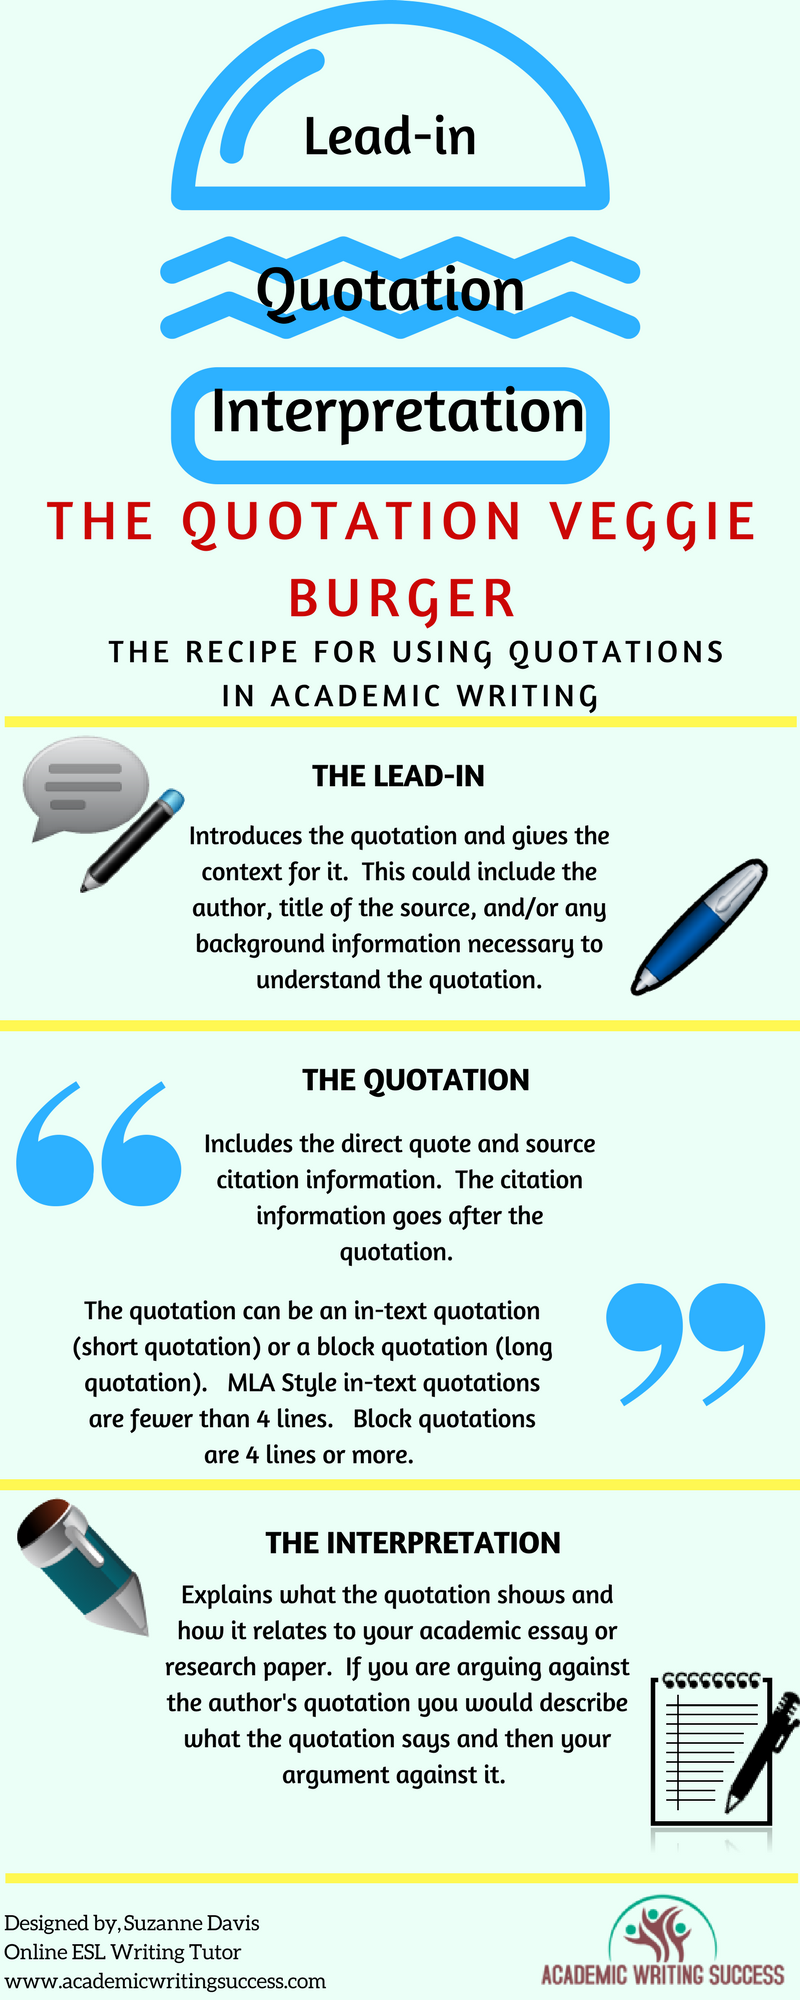 Ap English Essays This Infographic The Quotation Veggie Burger Will Help You Learn How To  Use Quotations In Your Academic Papers Essay On Health Care also Romeo And Juliet Essay Thesis This Infographic The Quotation Veggie Burger Will Help You Learn  Science And Technology Essays